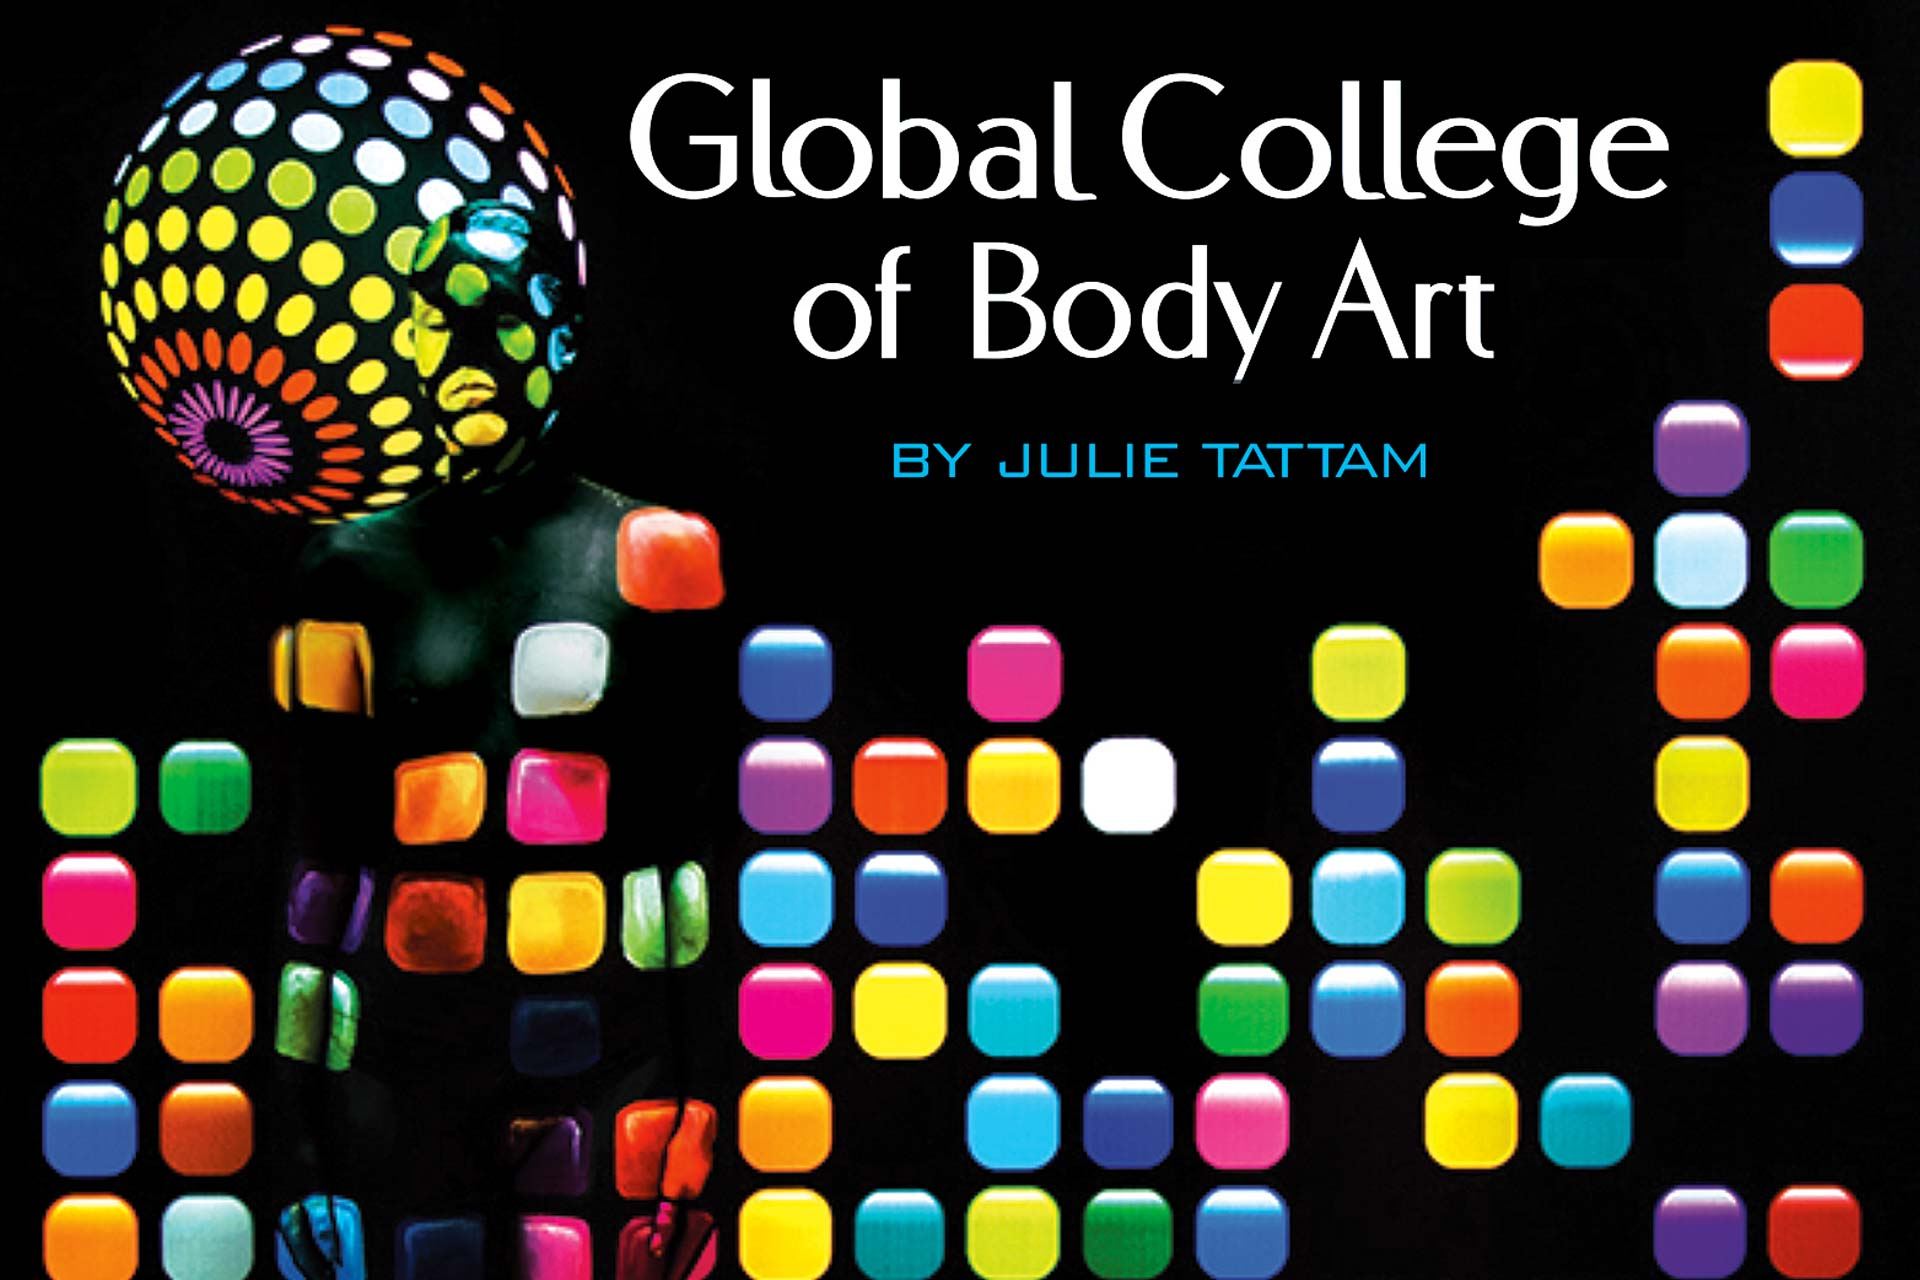 Global College of Body Art